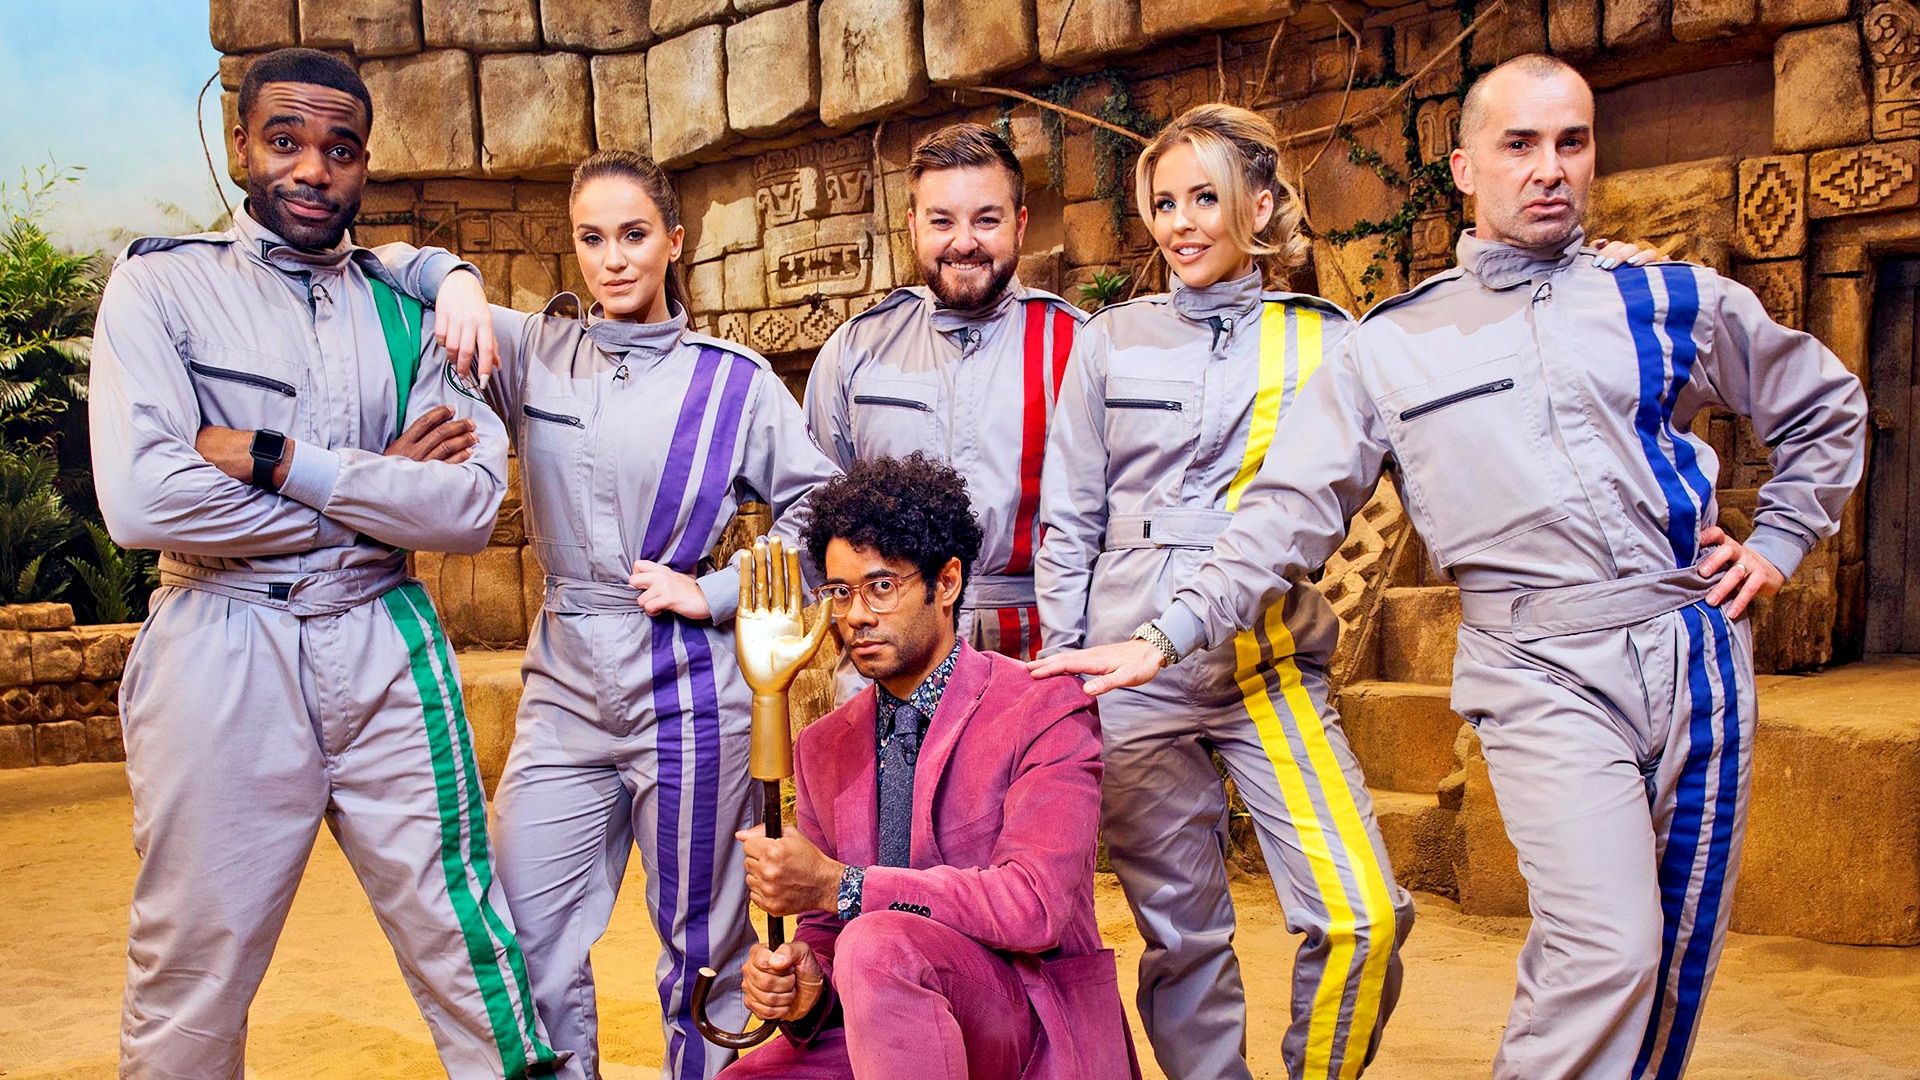 The Crystal Maze All 4